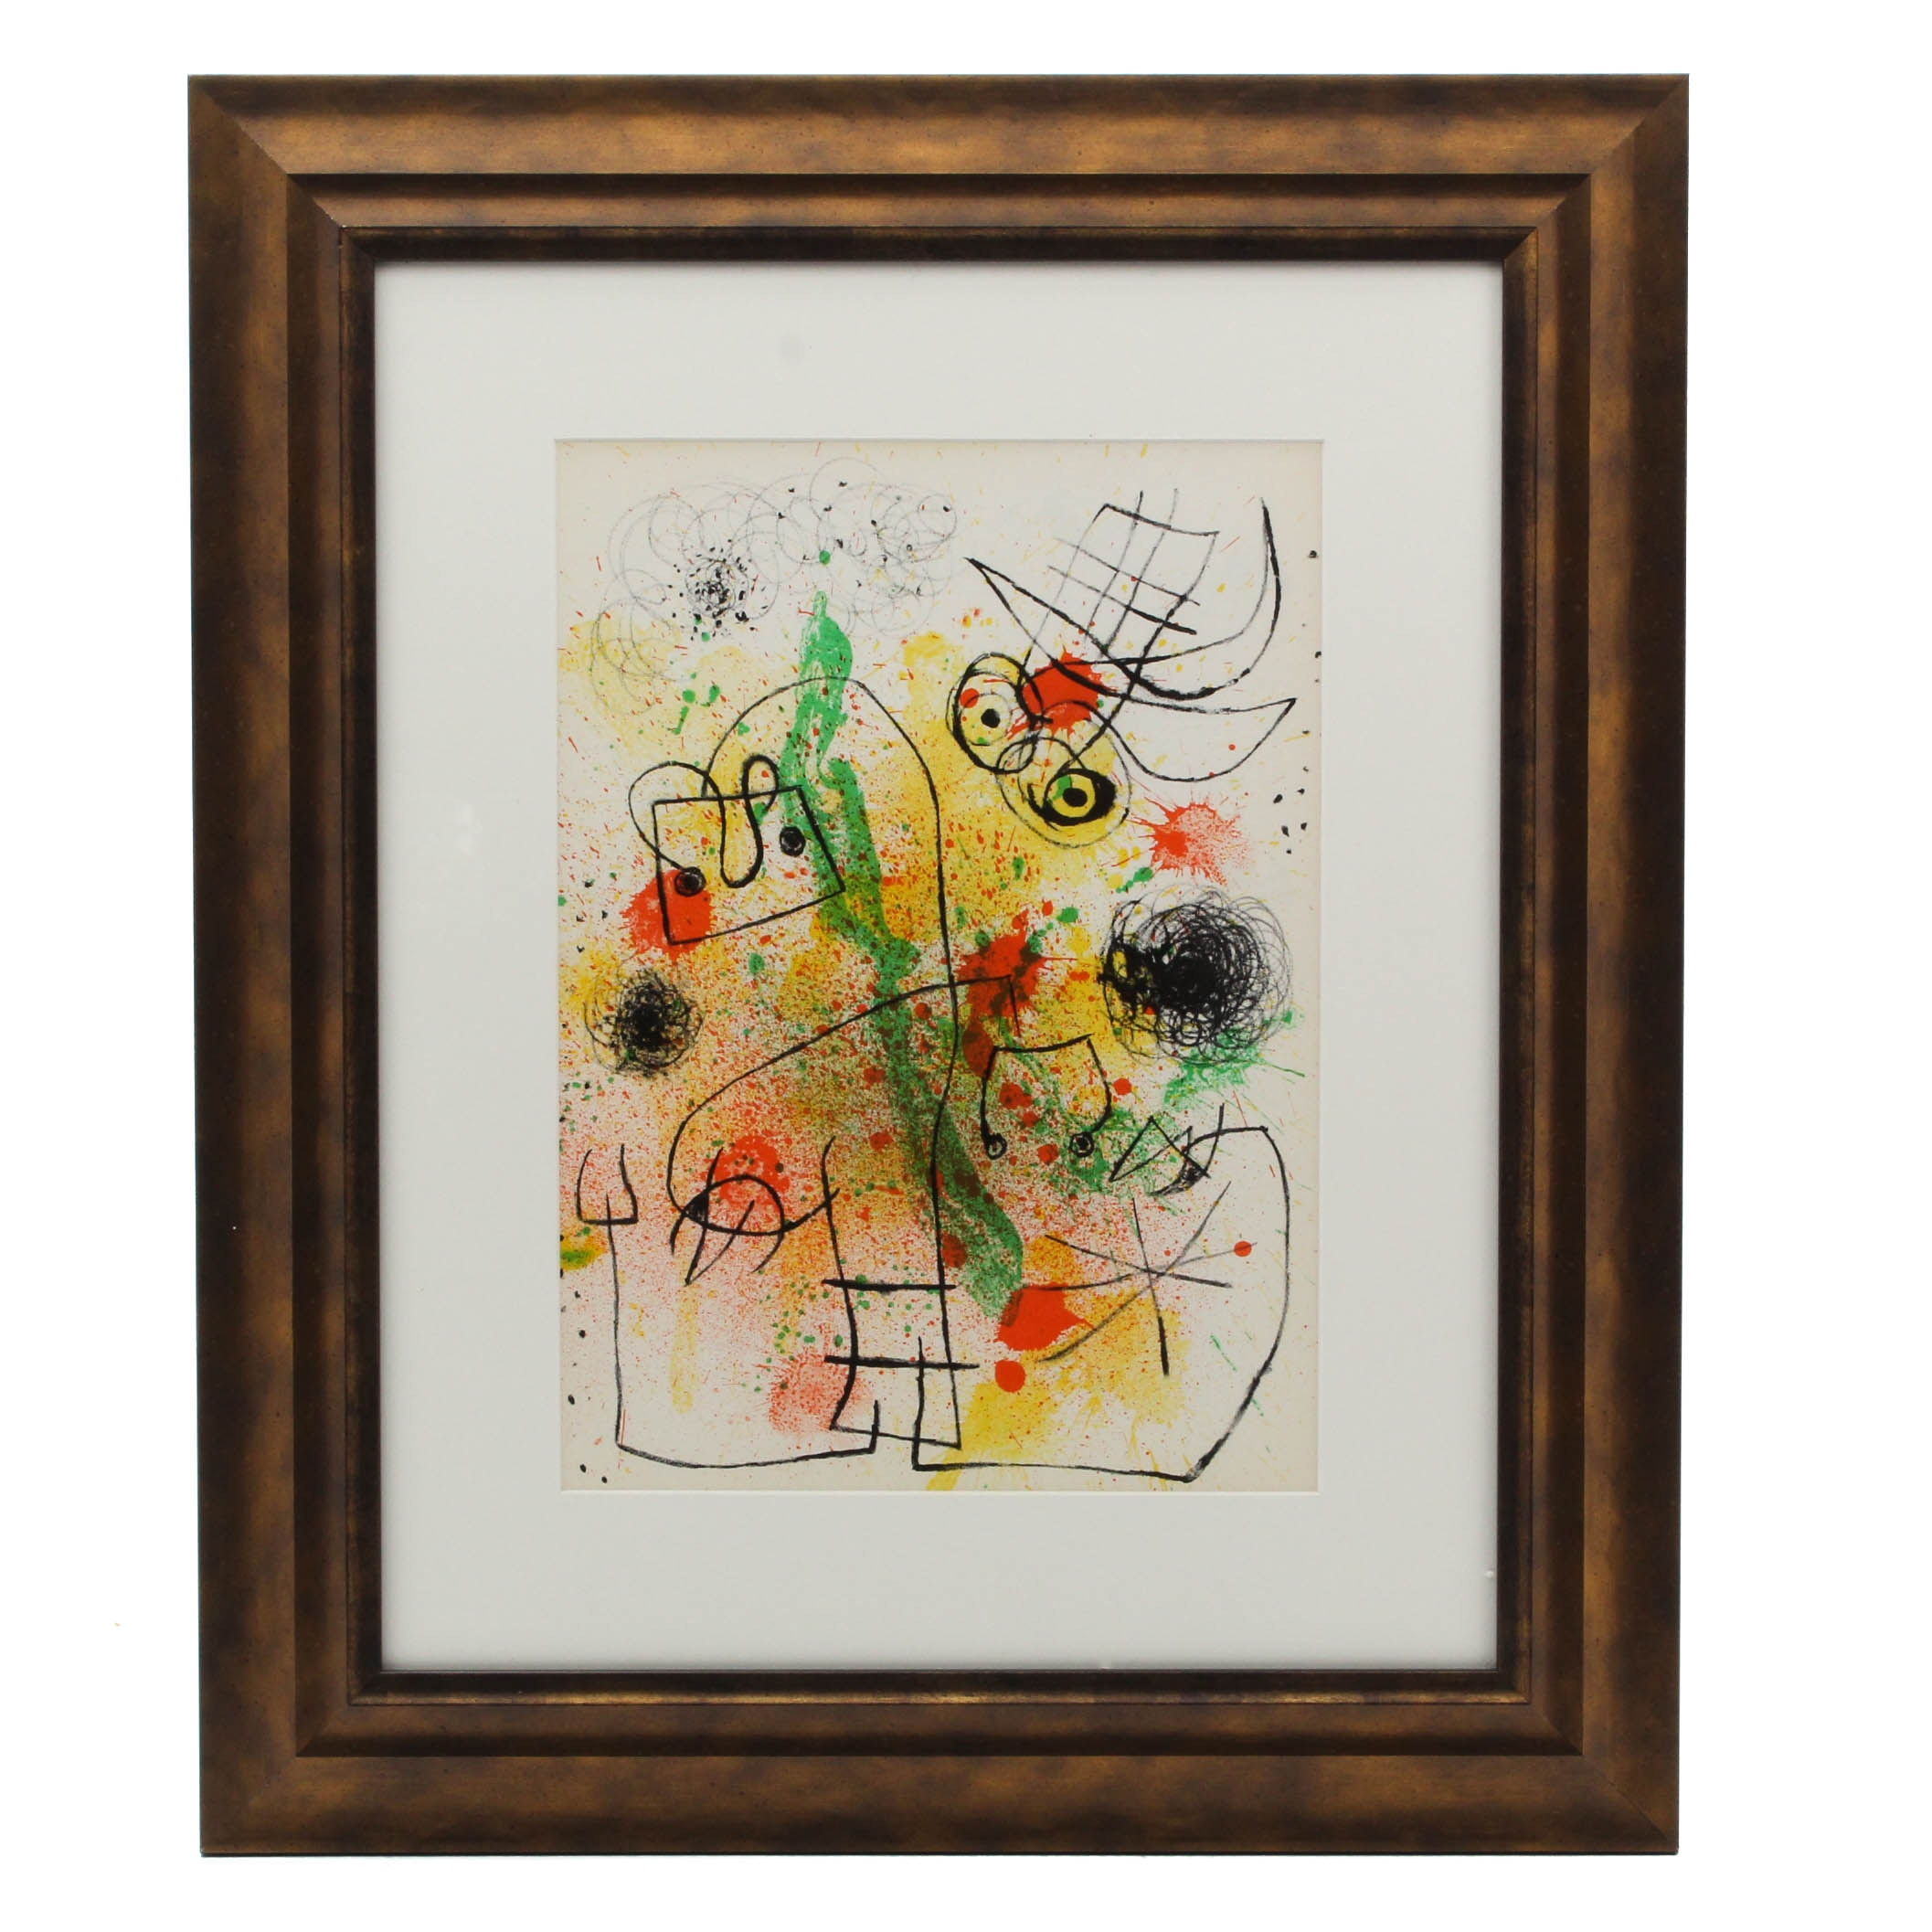 "Joan Miró 1967 Color Lithograph for ""Derriere Le Miroir"" #164 - 165"